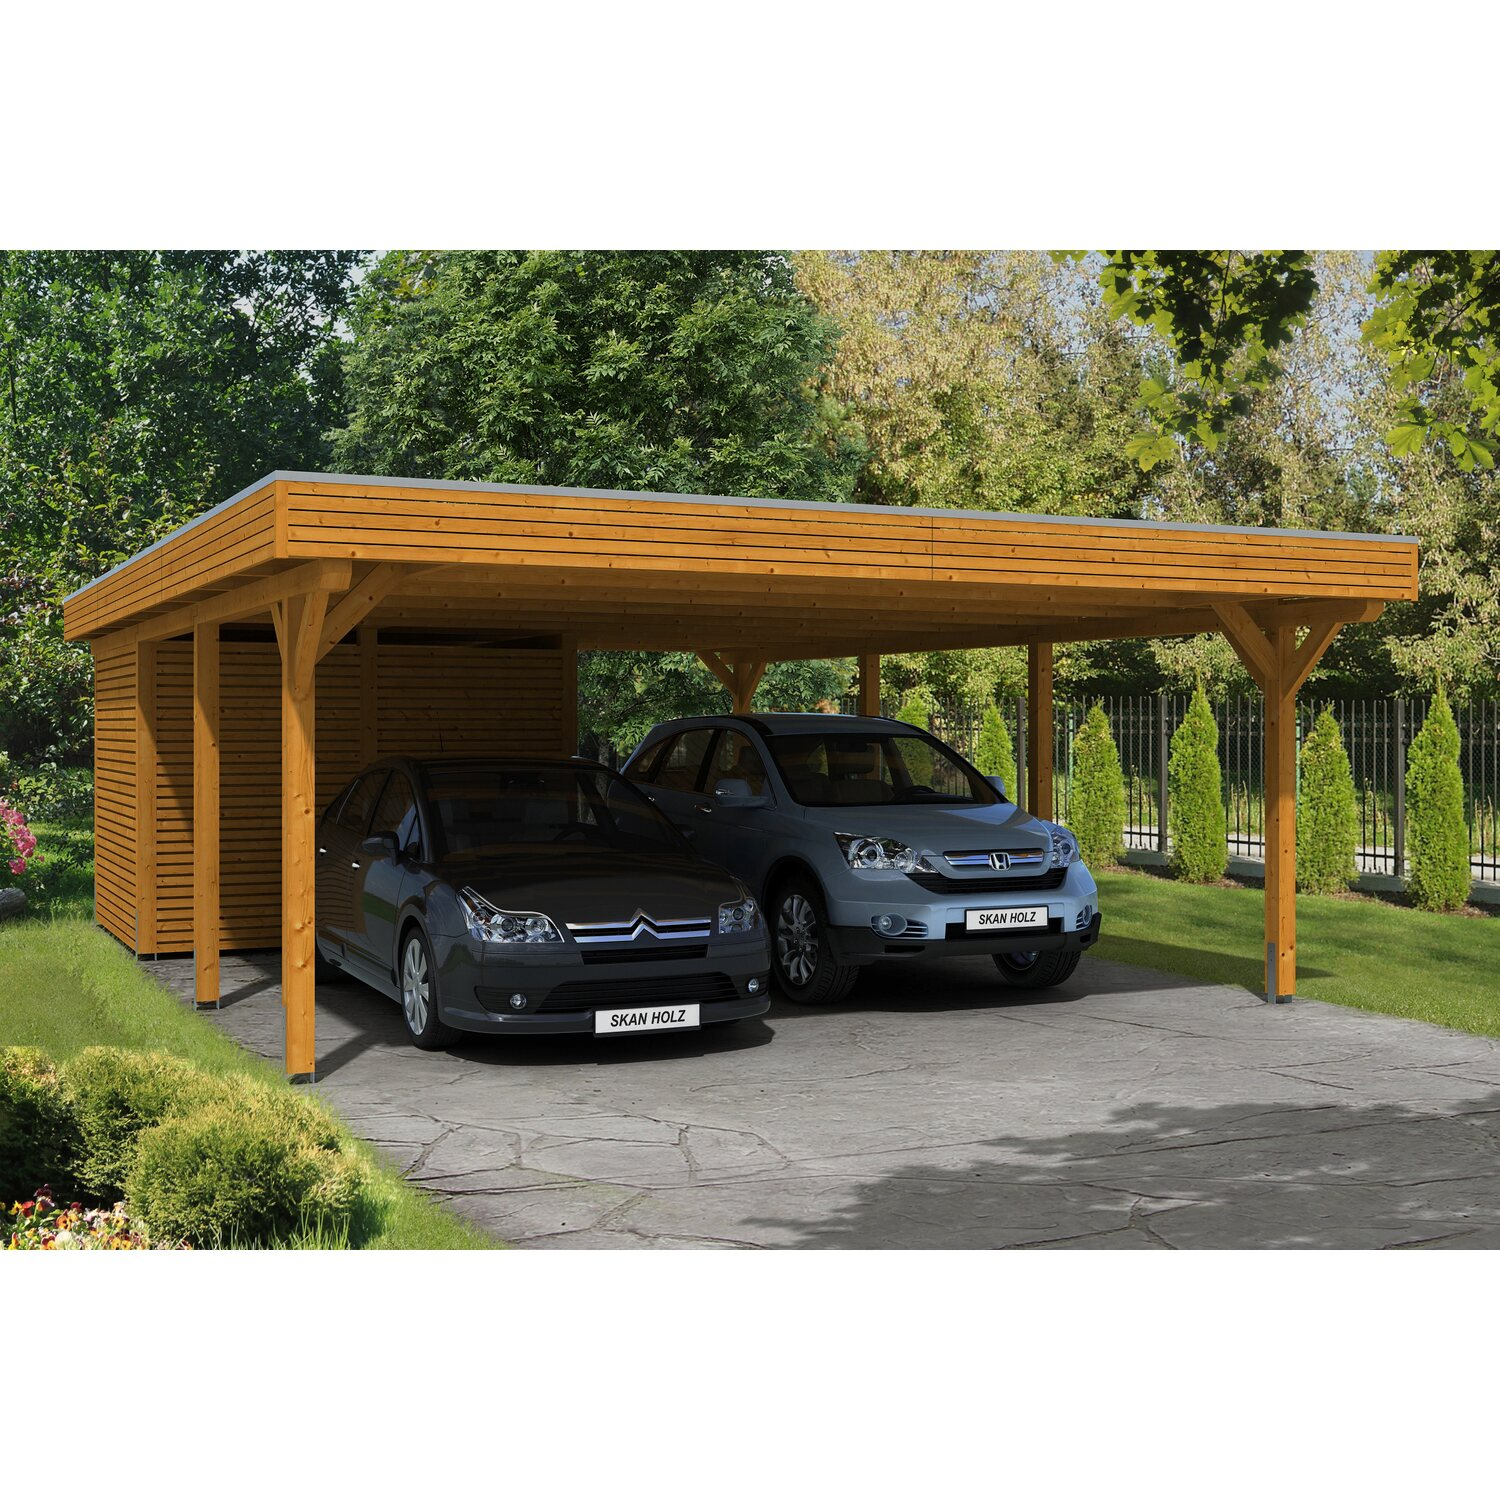 carport wohnmobil bausatz good carport fr wohnmobile carport metall bausatz with carport. Black Bedroom Furniture Sets. Home Design Ideas